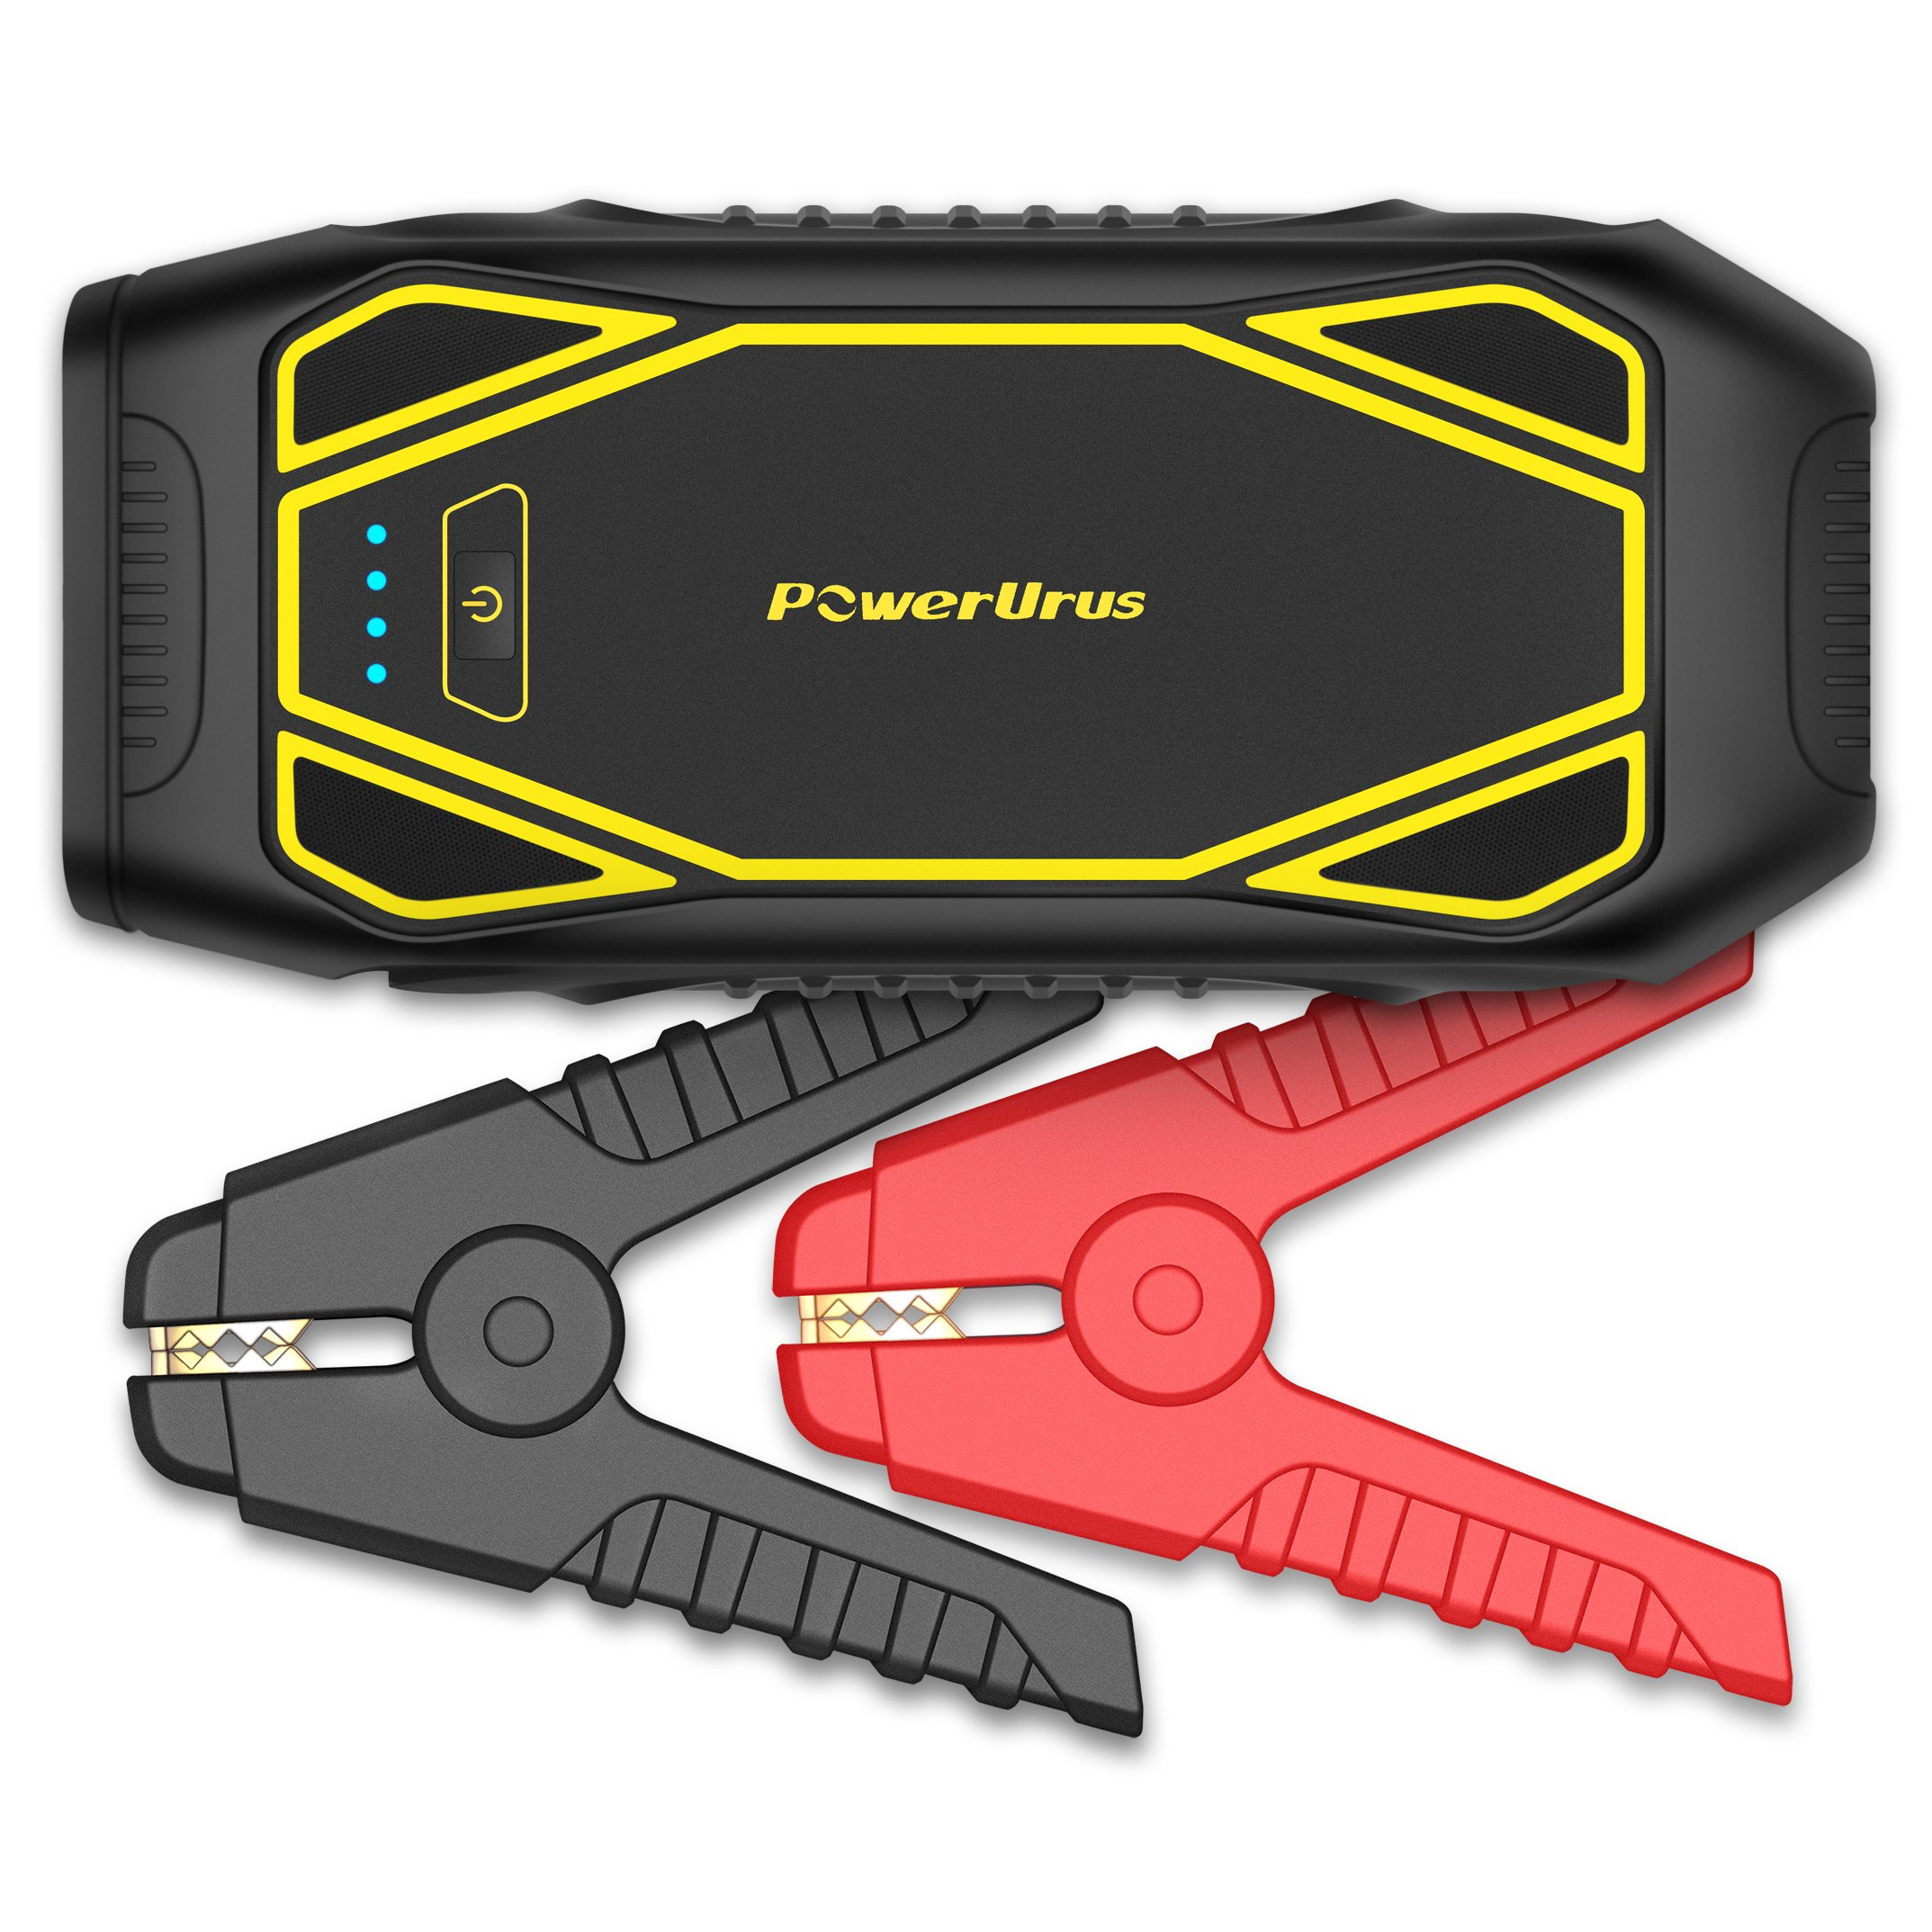 PowerUrus IP66 1600A Peak Portable Car Jump Starter (Up to 10L Gas, 6.5L Diesel) Quick Charge 3.0 Power Bank 12V DC Power Source